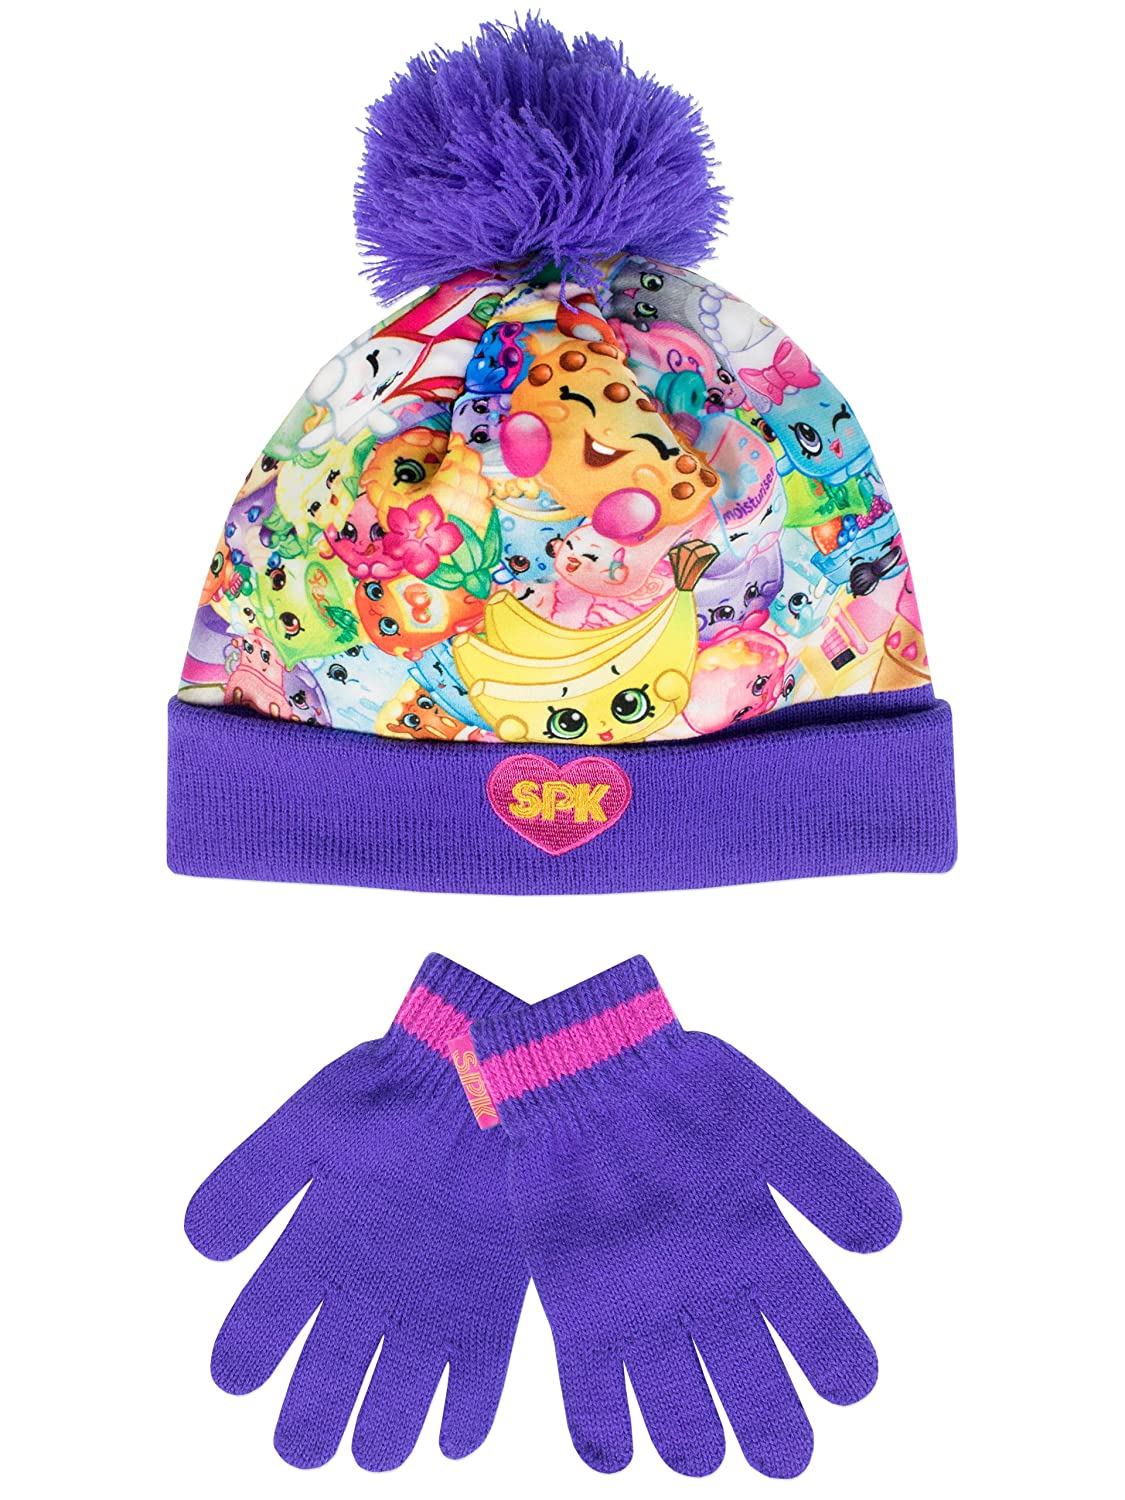 Shopkins Girls SPK Hat and Gloves Set Ages 3 to 12 Years